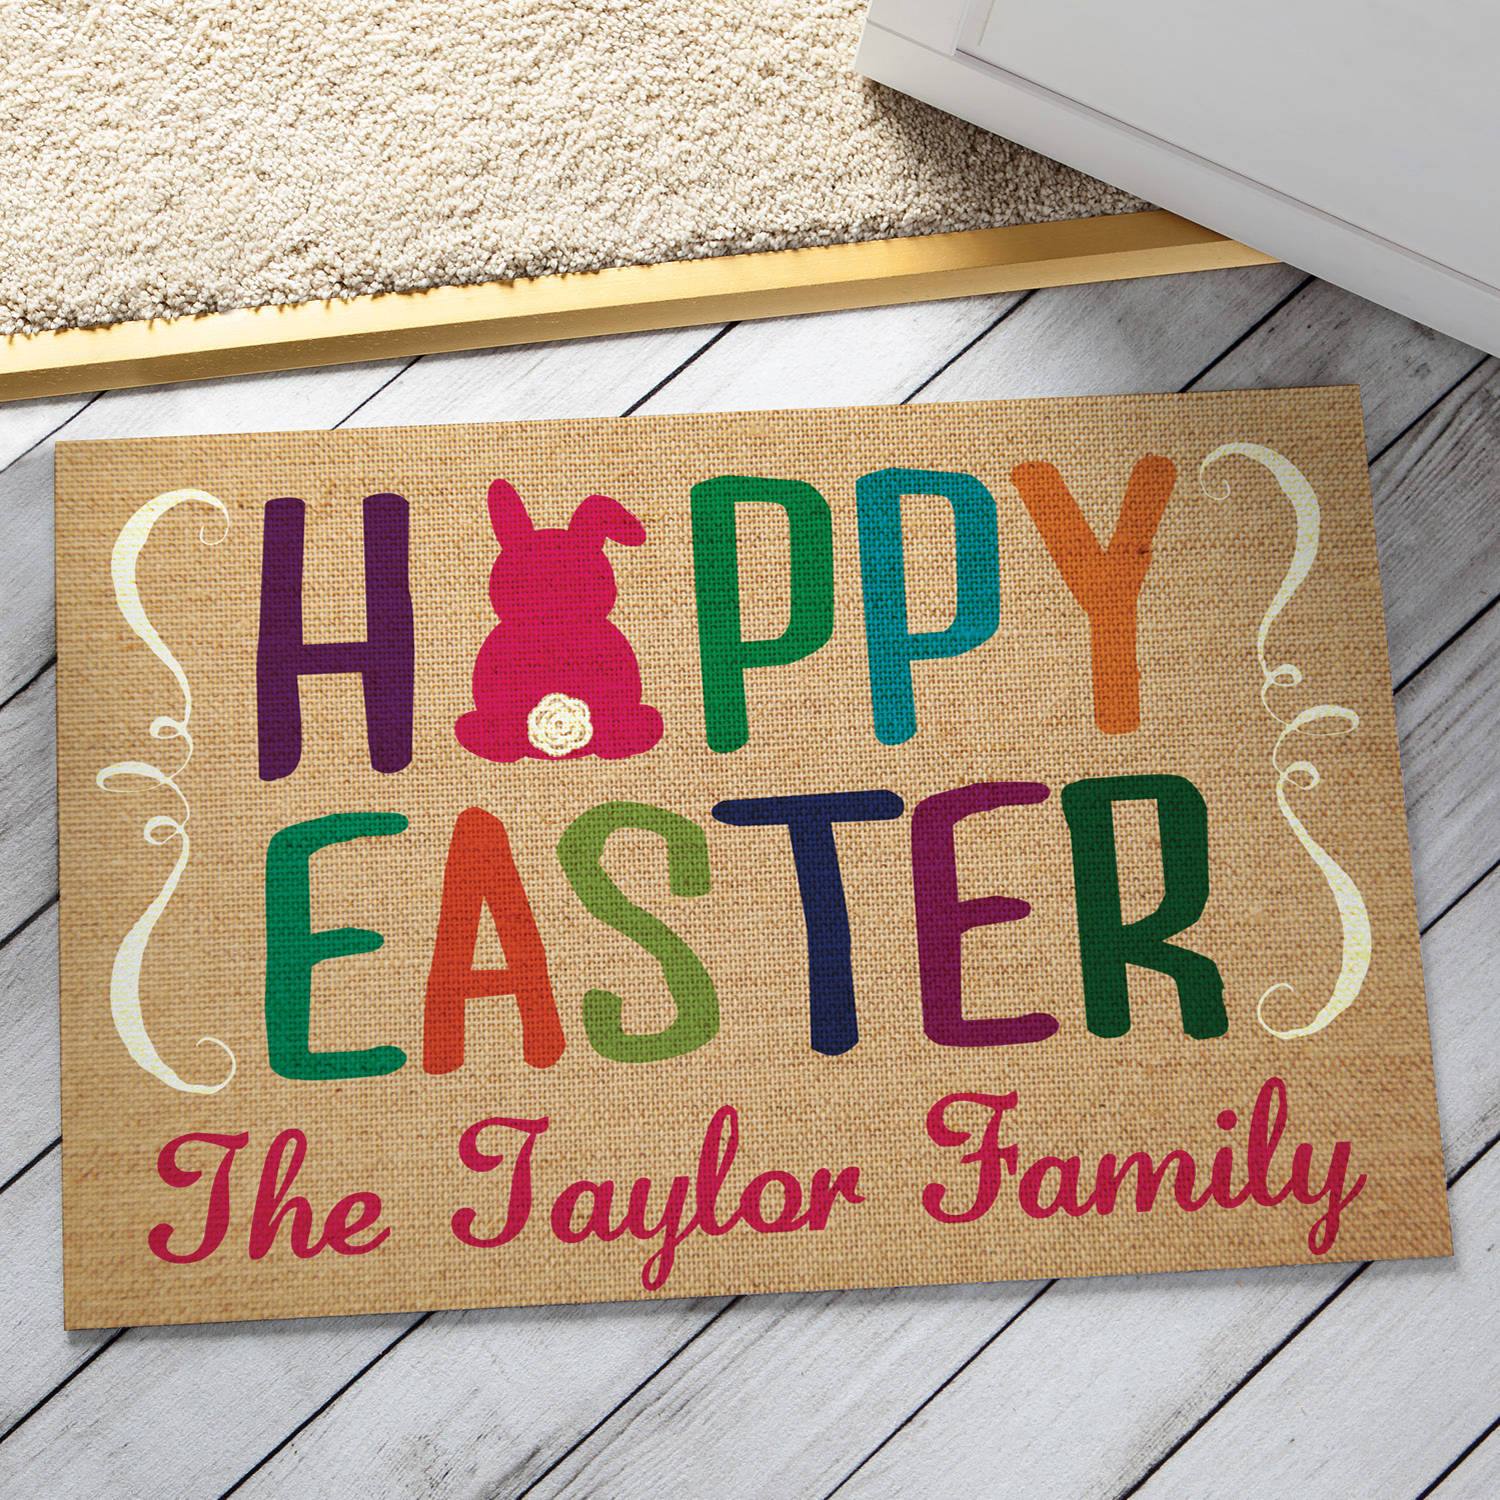 Personalized Doormat - Happy Easter